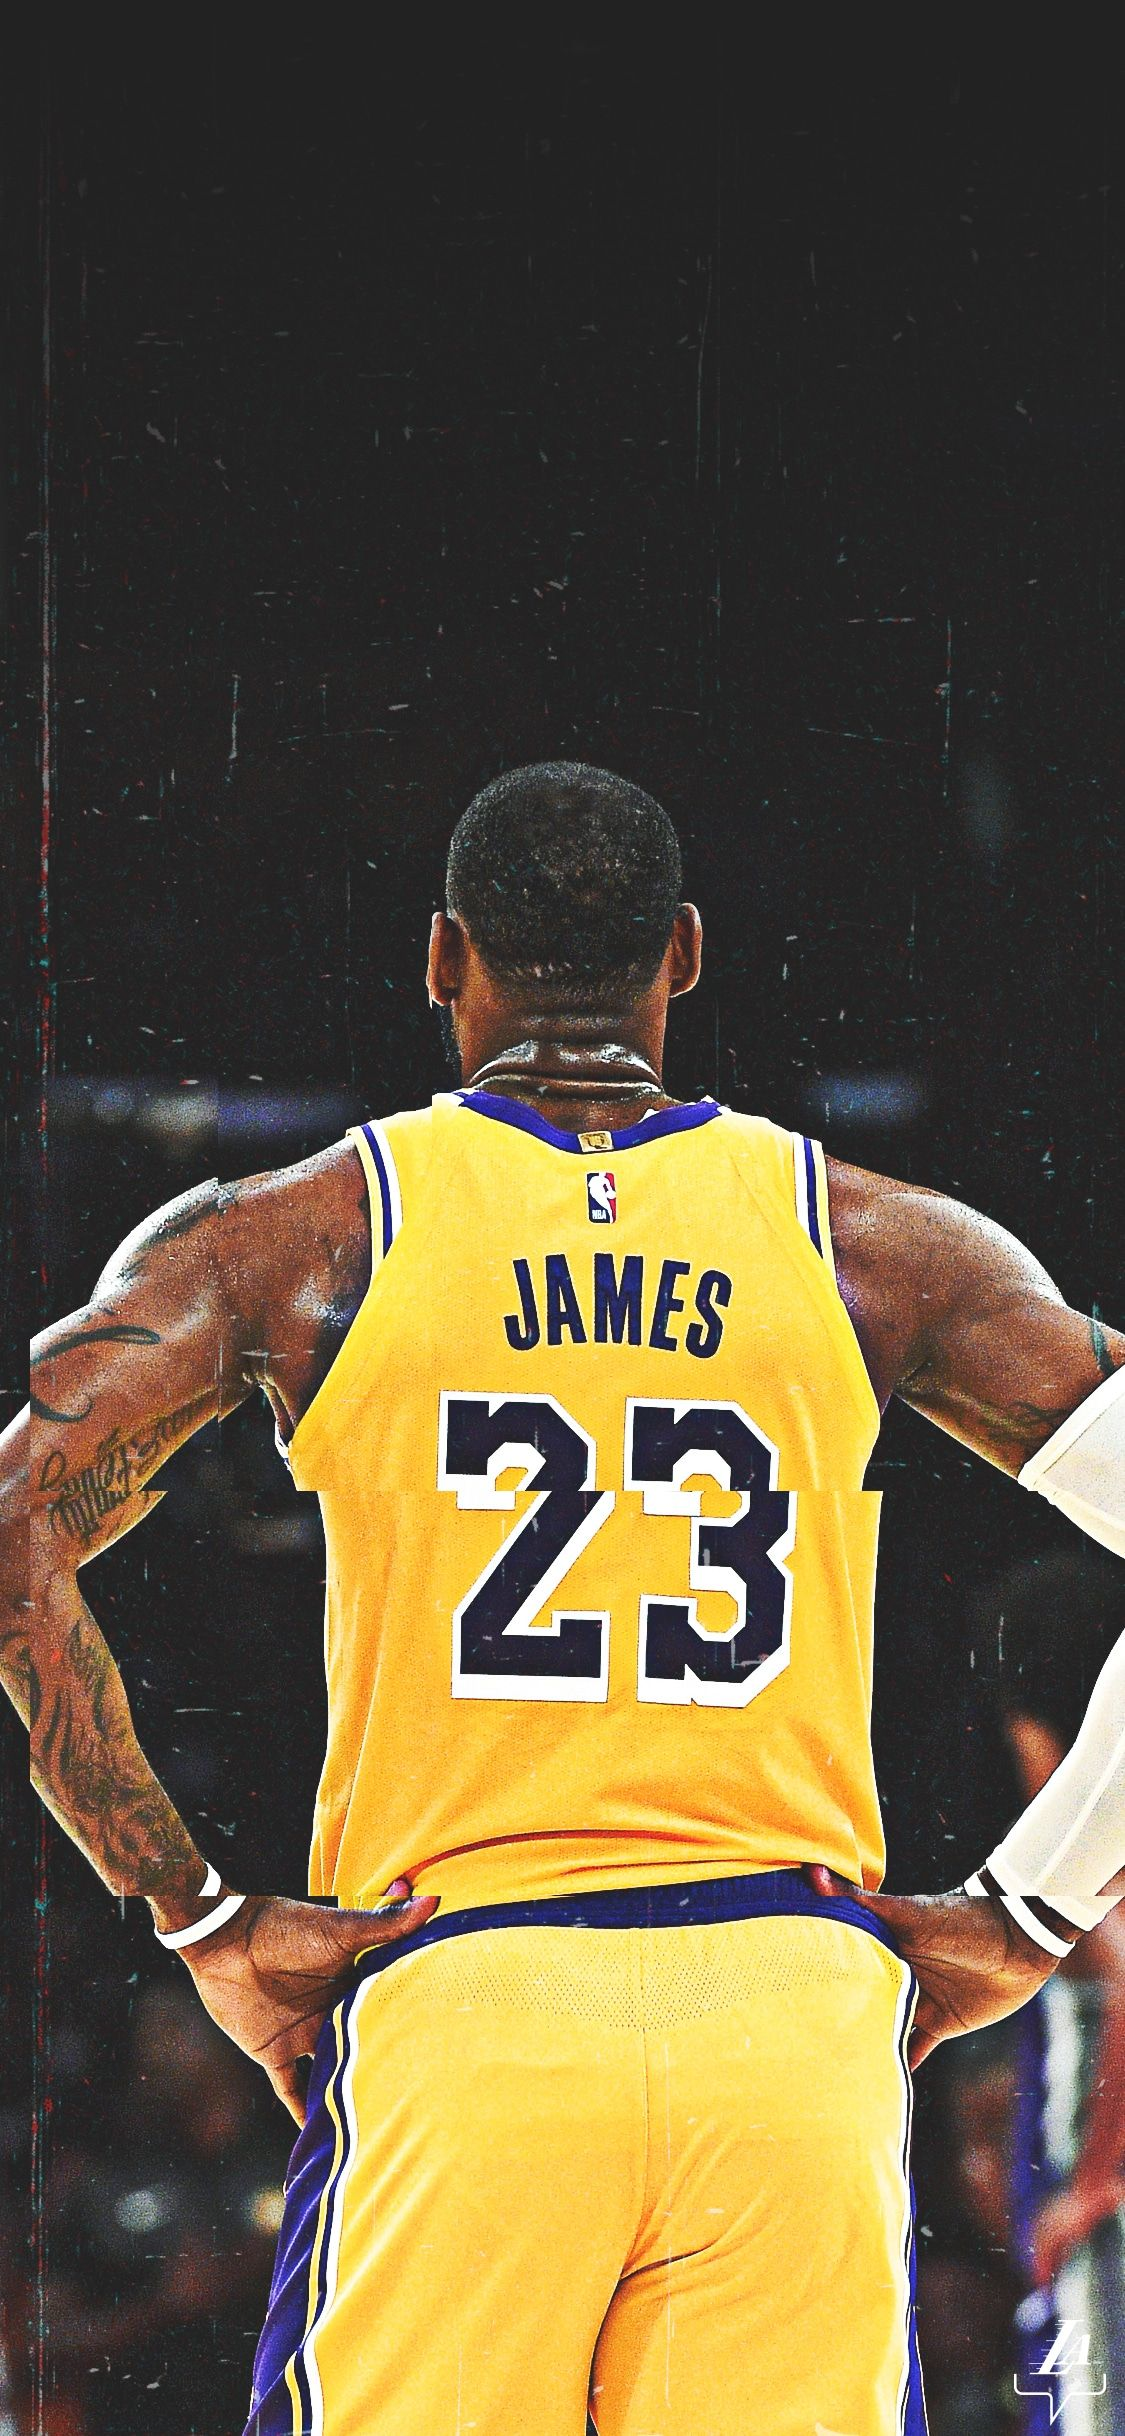 Lakers Wallpapers And Infographics In 2020 Lebron James Lakers Lebron James Wallpapers Nba Lebron James